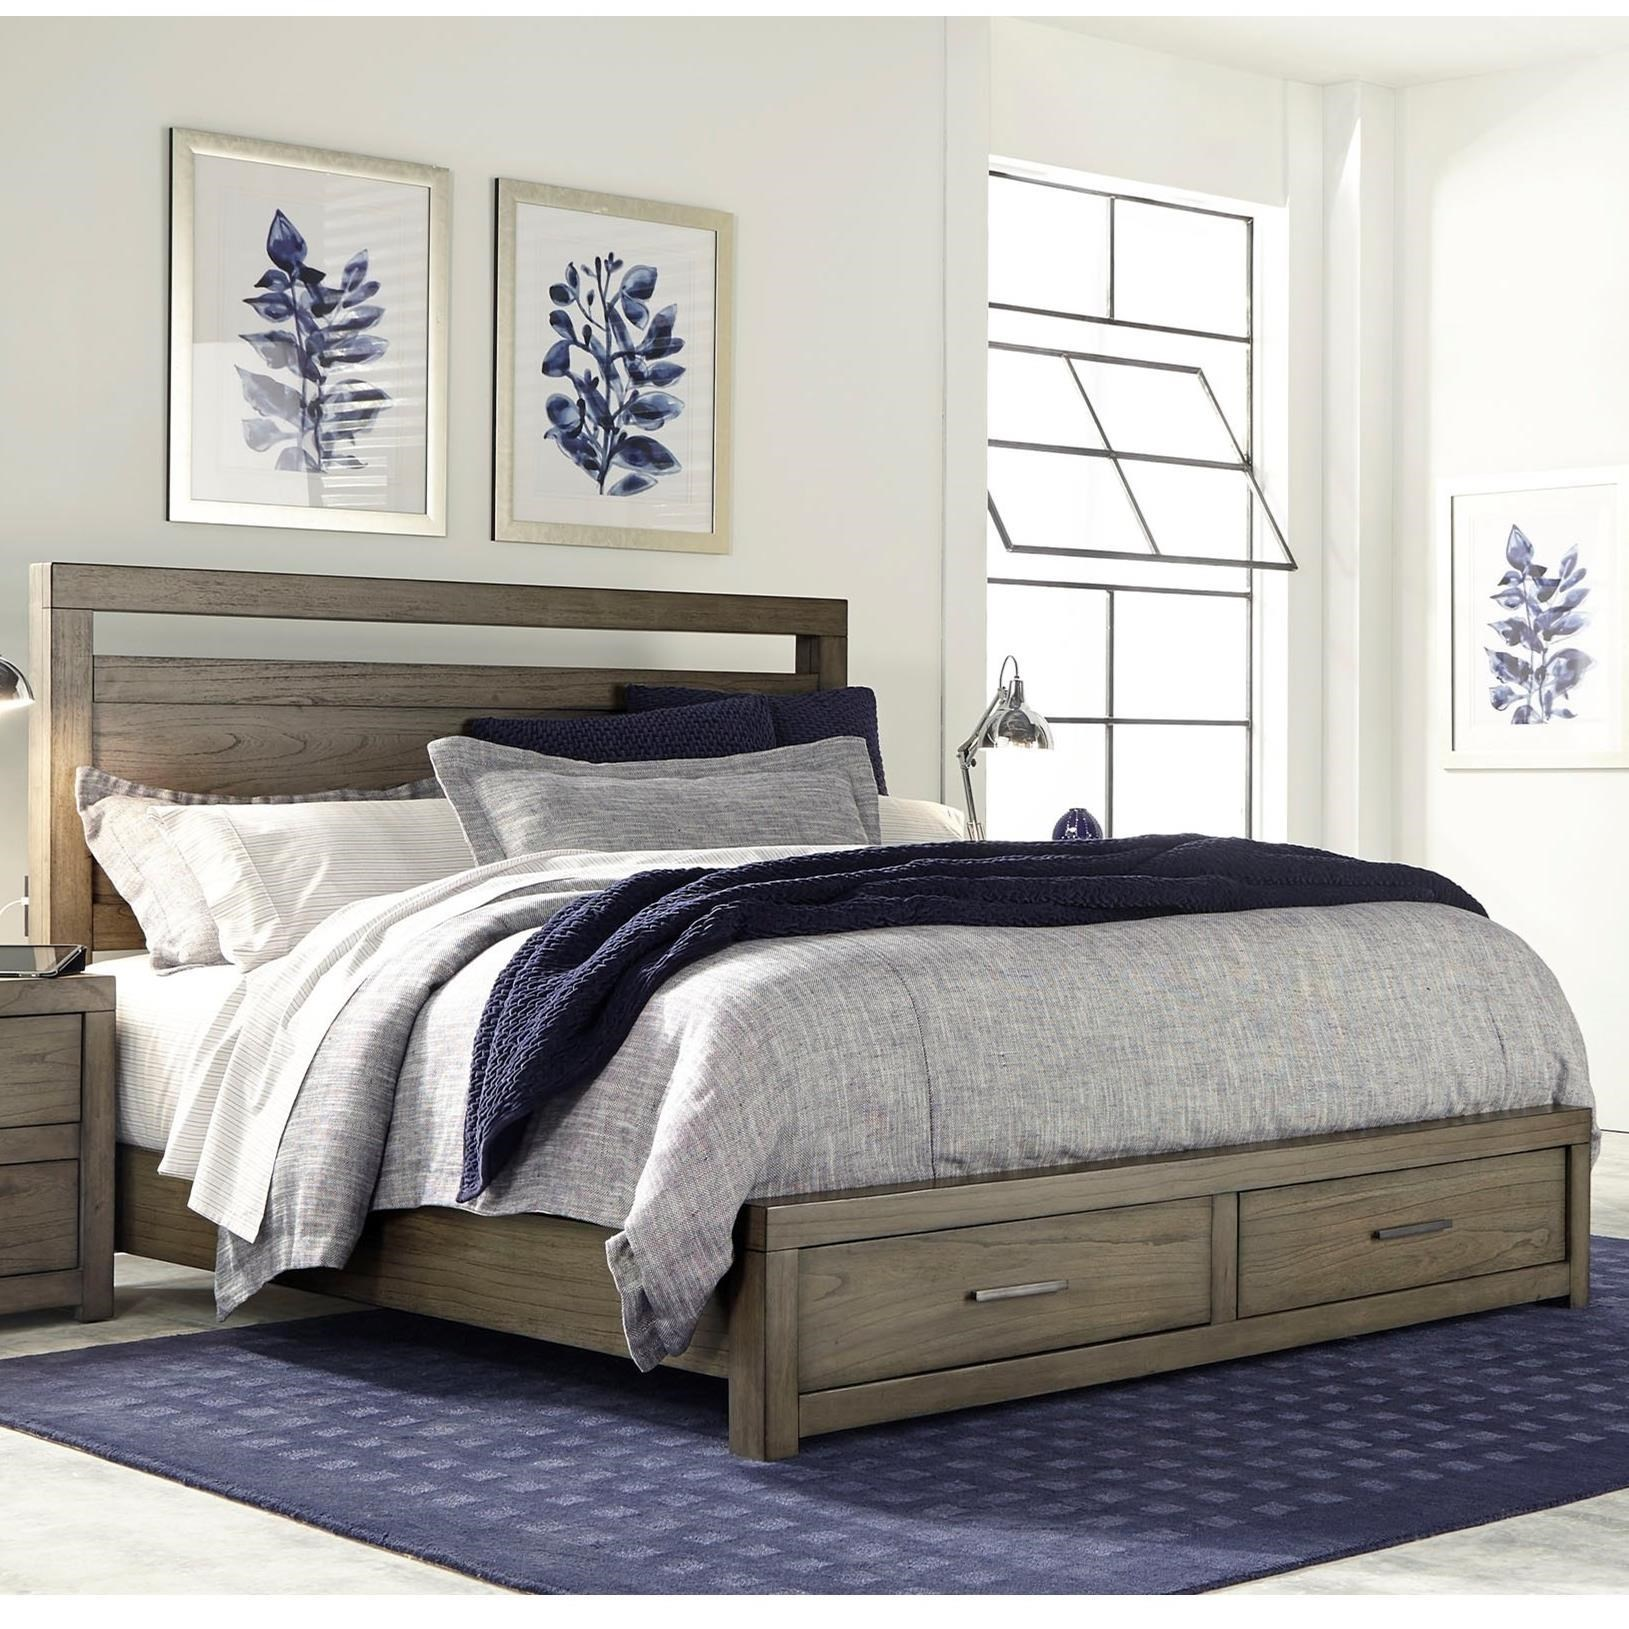 loft king bed. bed shown may not represent size indicated loft king